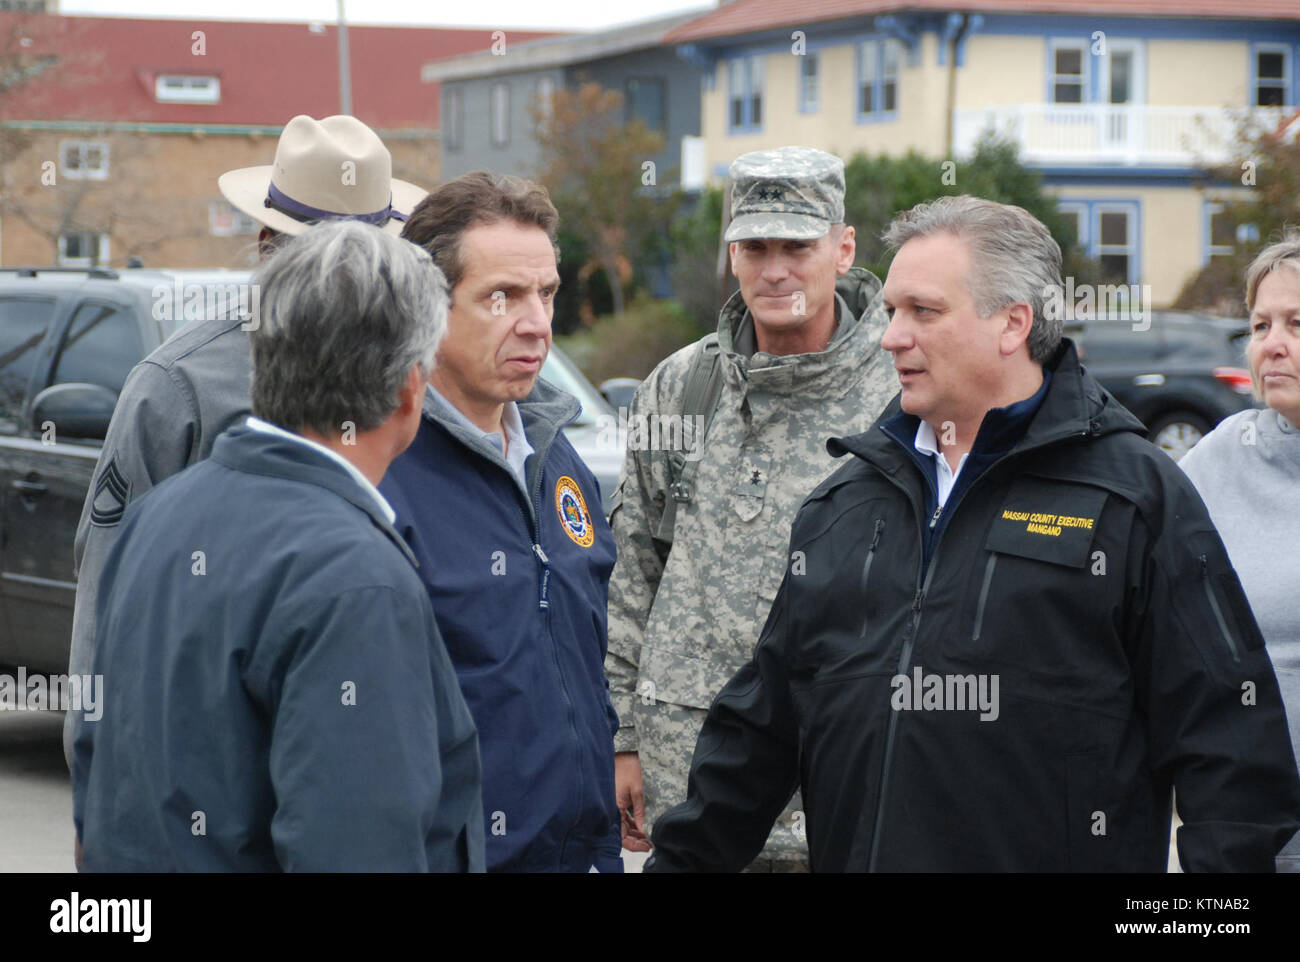 LONG BEACH, N.Y. – New York State Governor Andrew Cuomo meets with Nassau County Executive Edward Mangano and the - Stock Image